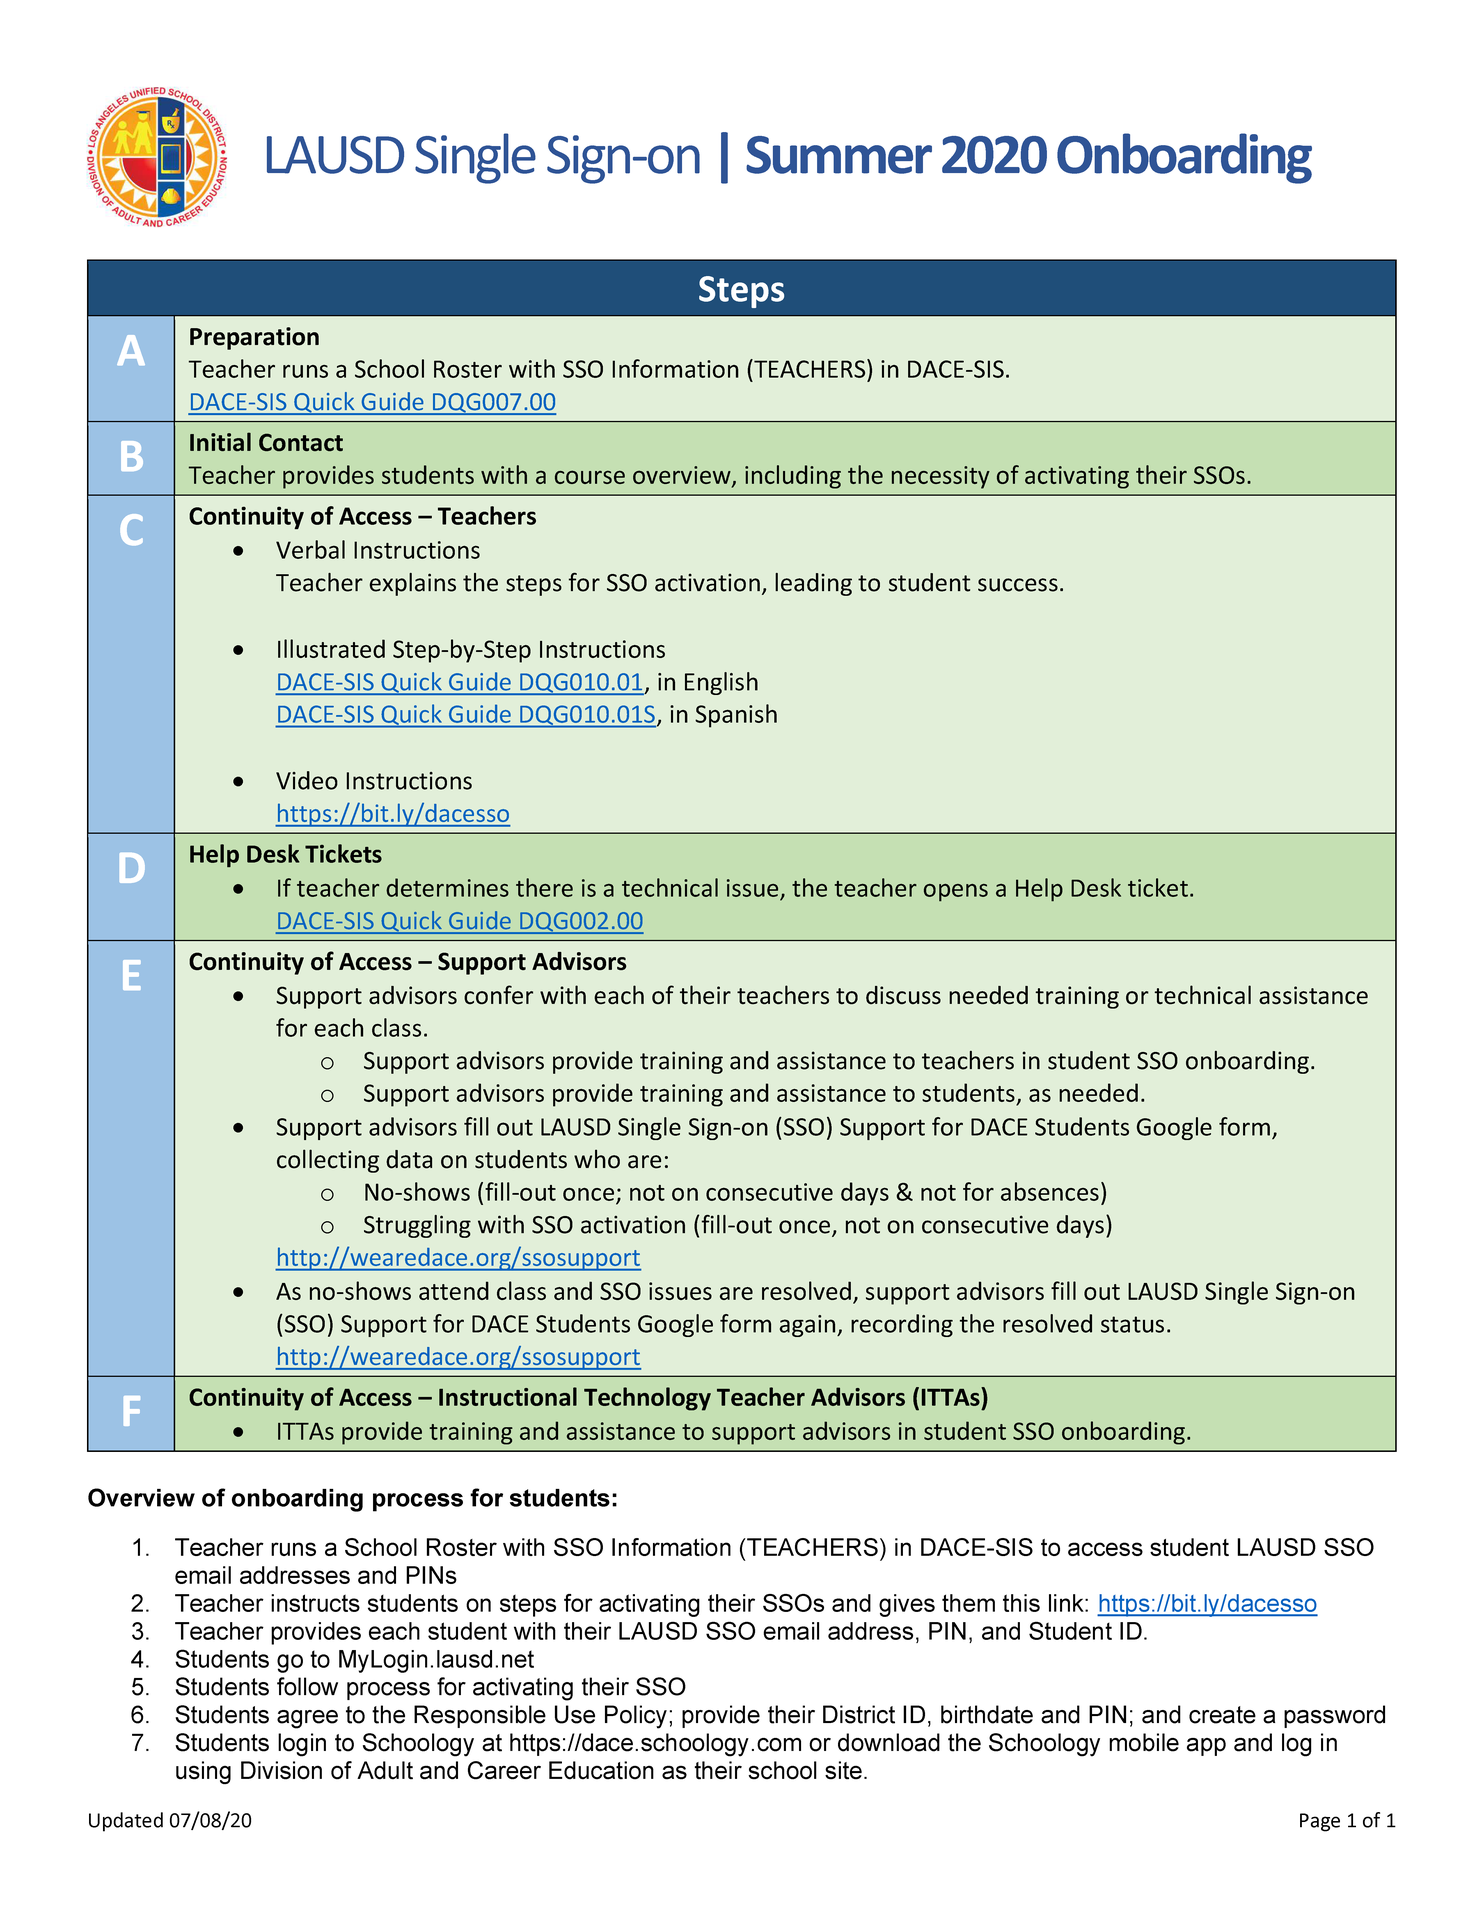 LAUSD Single Sign-on | Summer 2020 Onboarding thumbnail